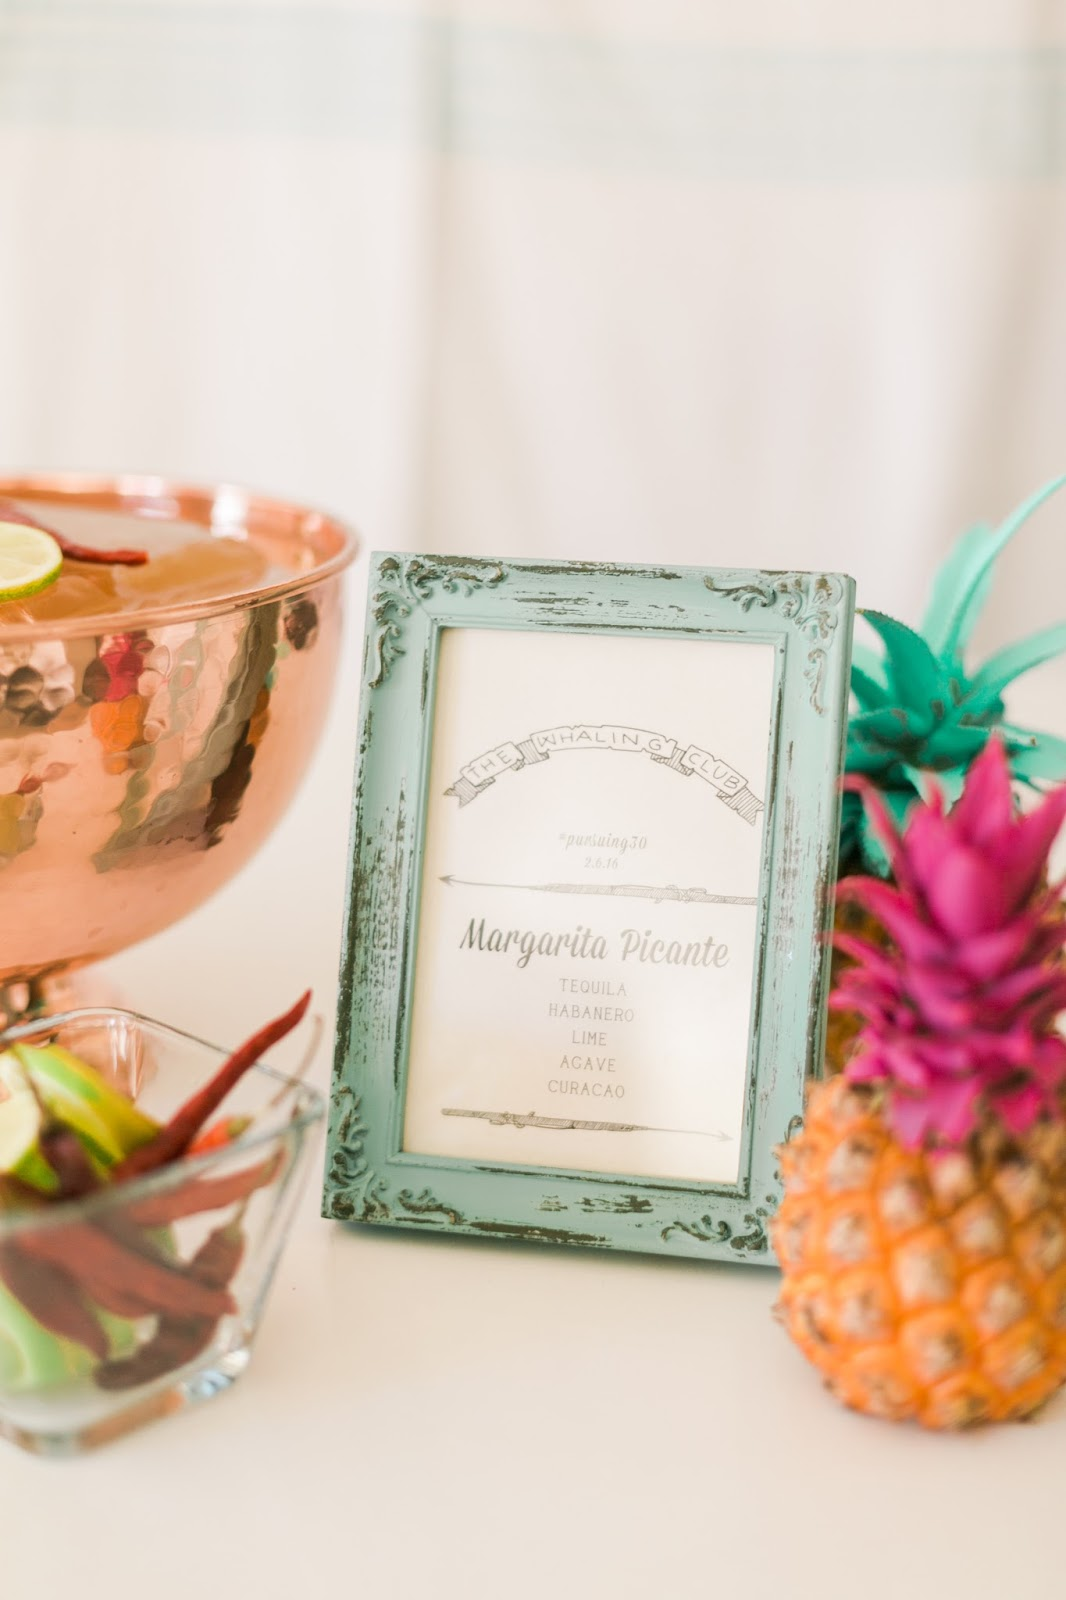 spicy margarita recipe, the whaling club, palm springs pool party idea